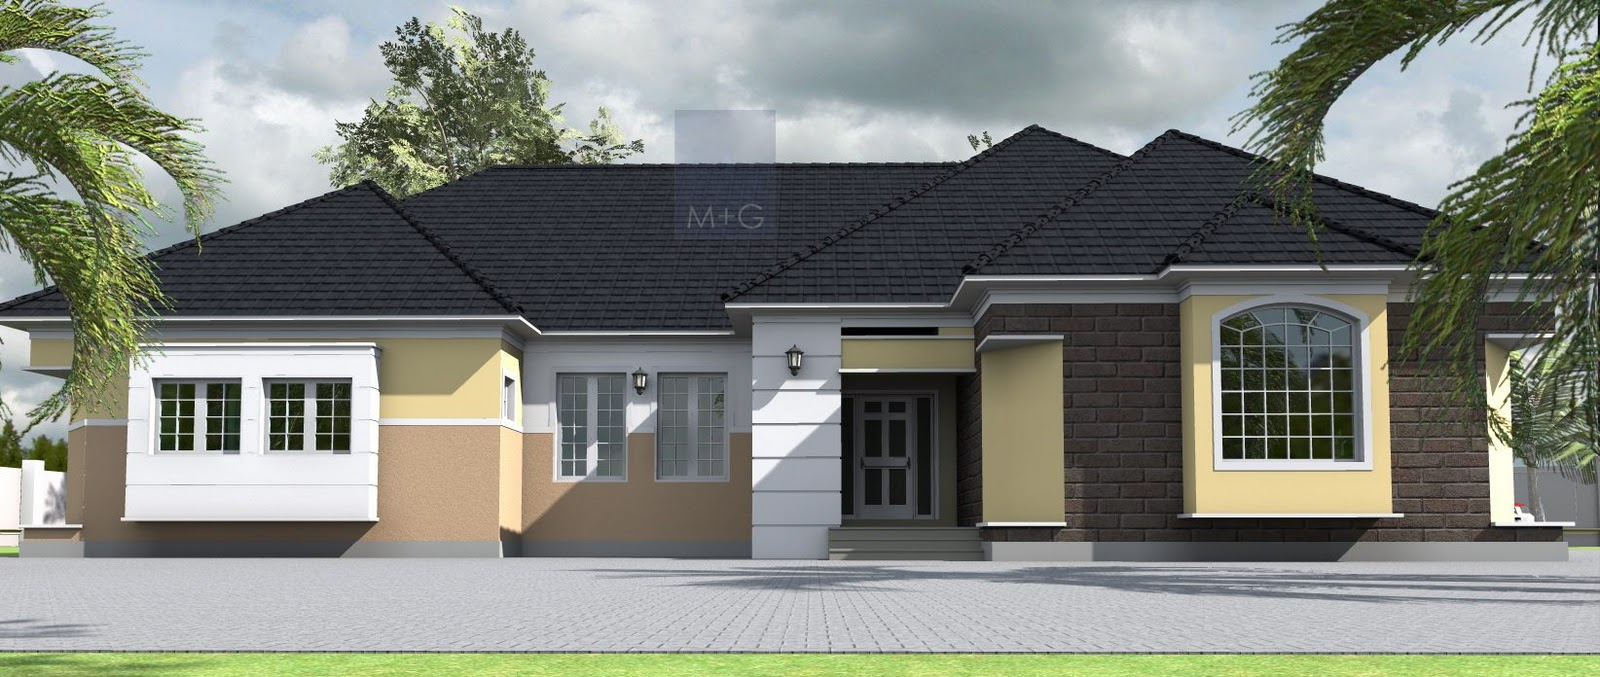 House plans and design architectural designs for 4 for Nigeria house plans